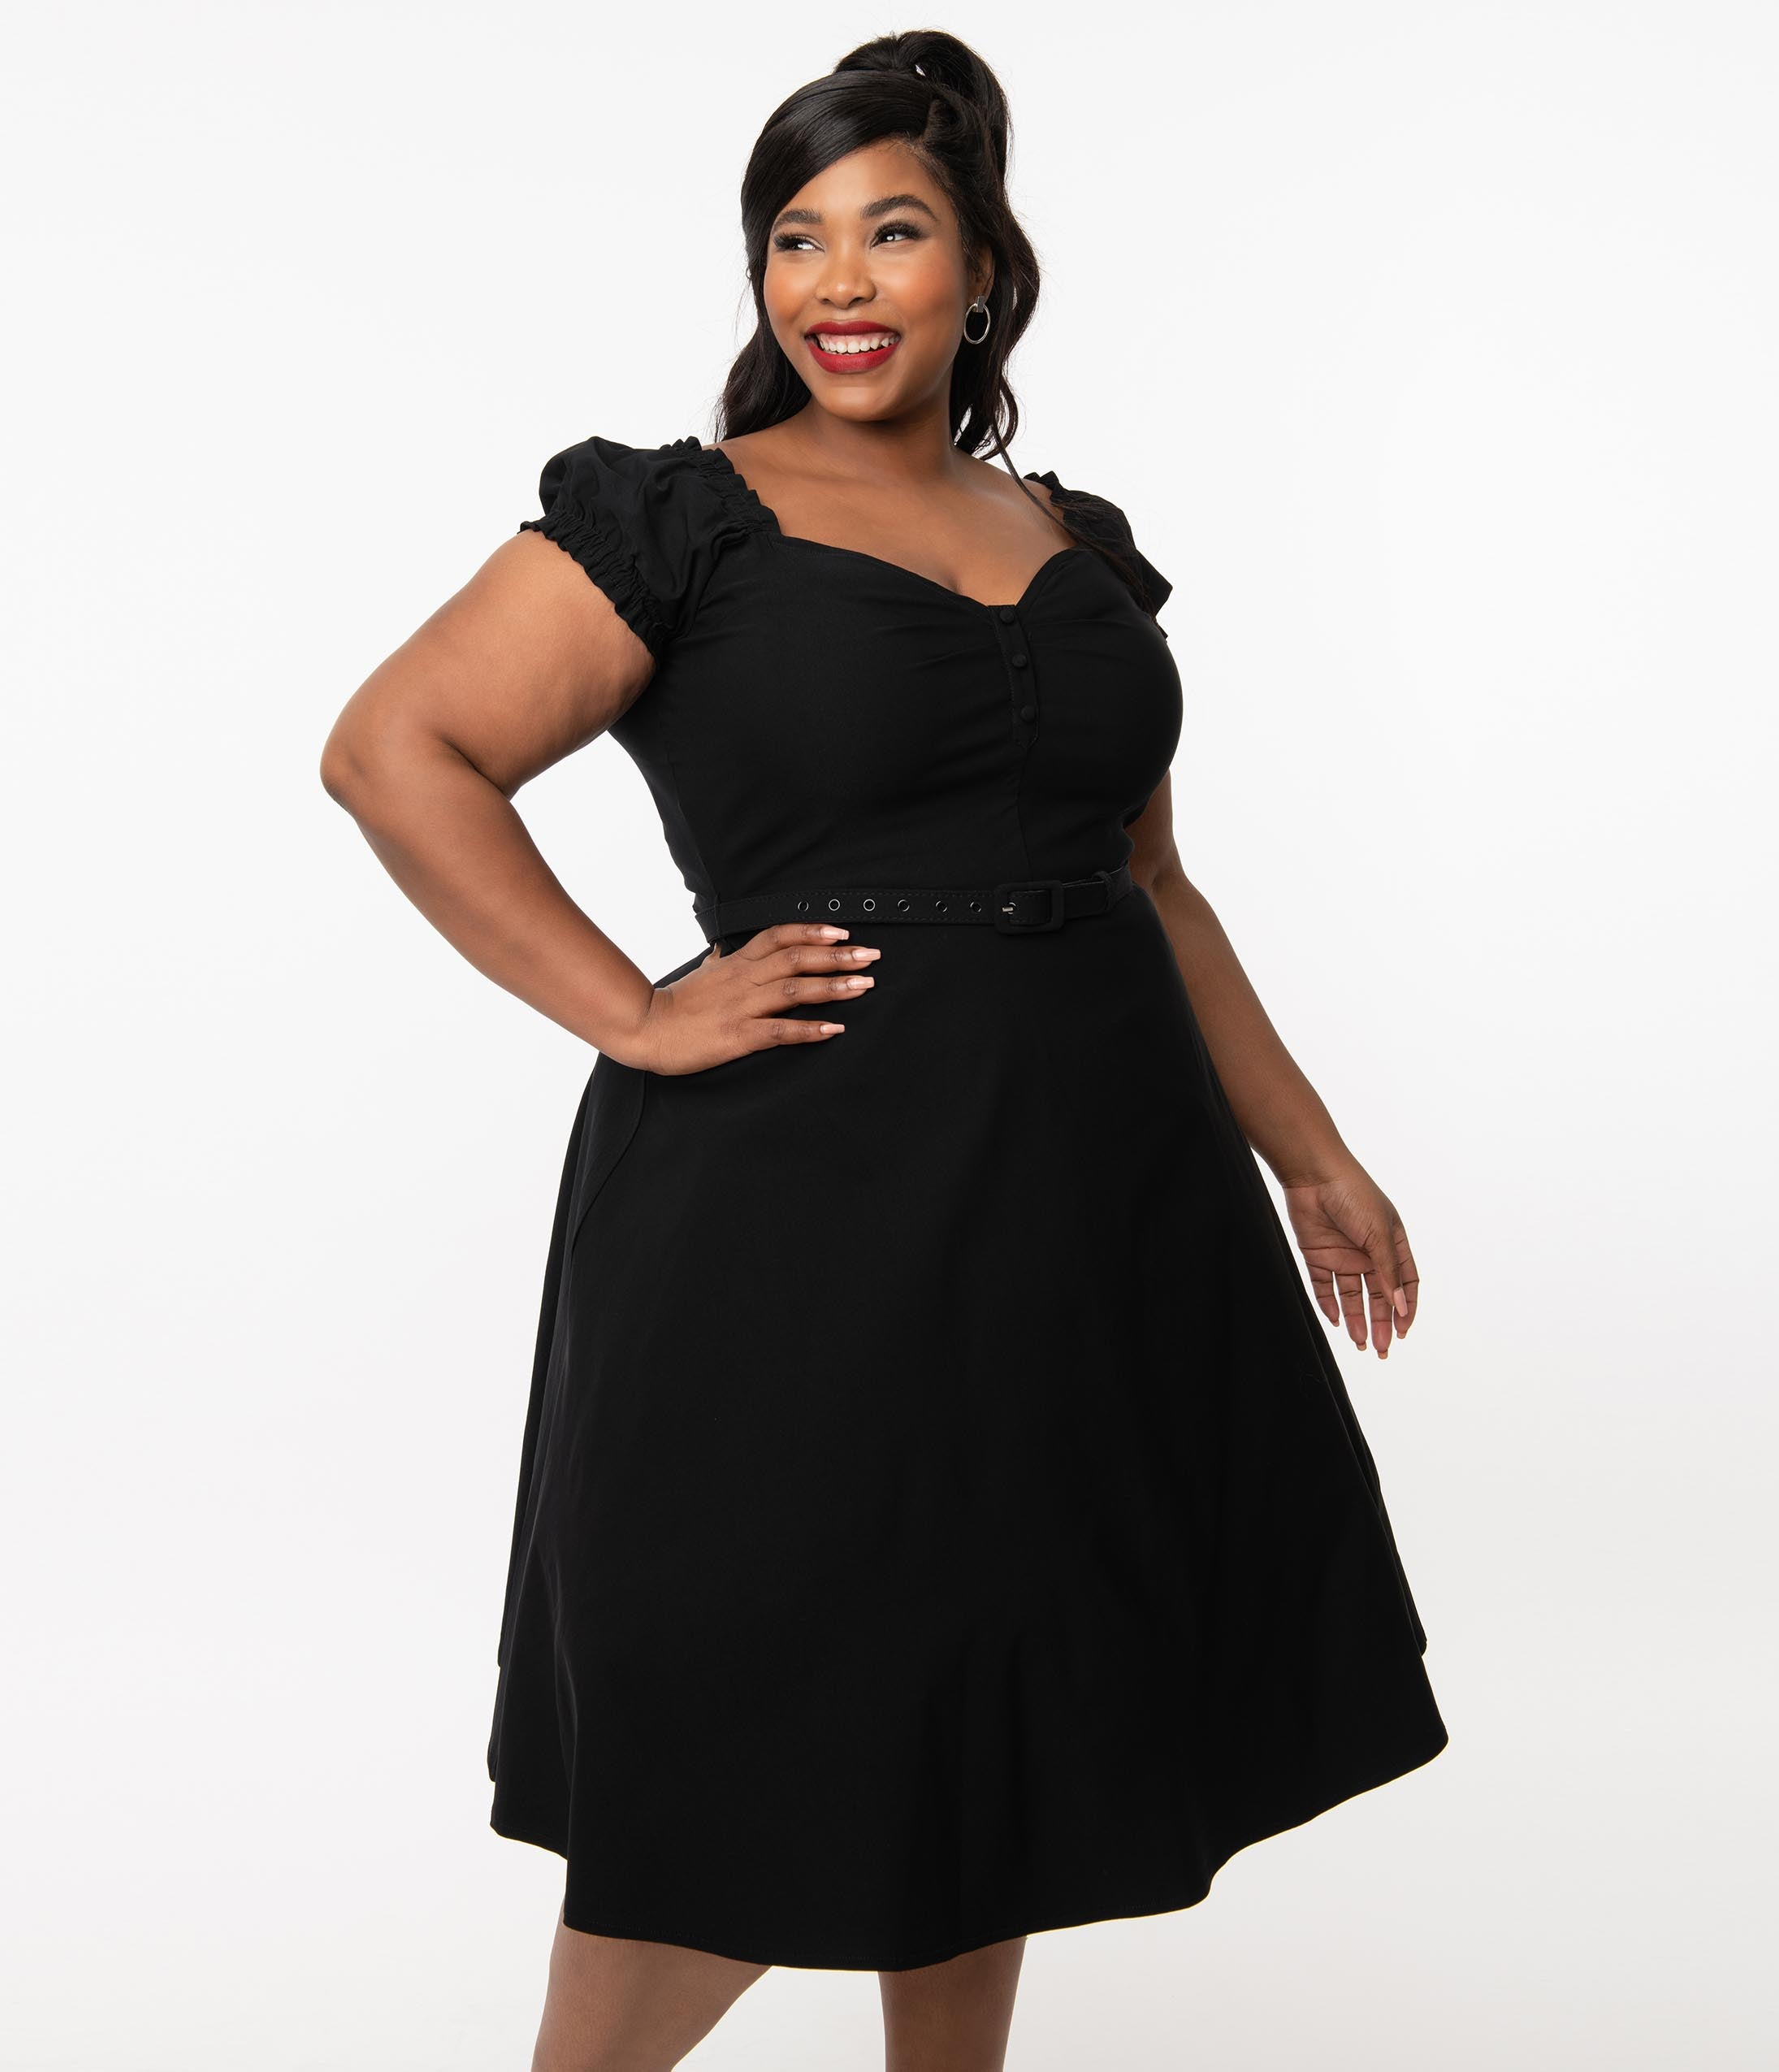 What Did Women Wear in the 1950s? 1950s Fashion Guide Unique Vintage Plus Size 1950S Black Ohara Swing Dress $78.00 AT vintagedancer.com